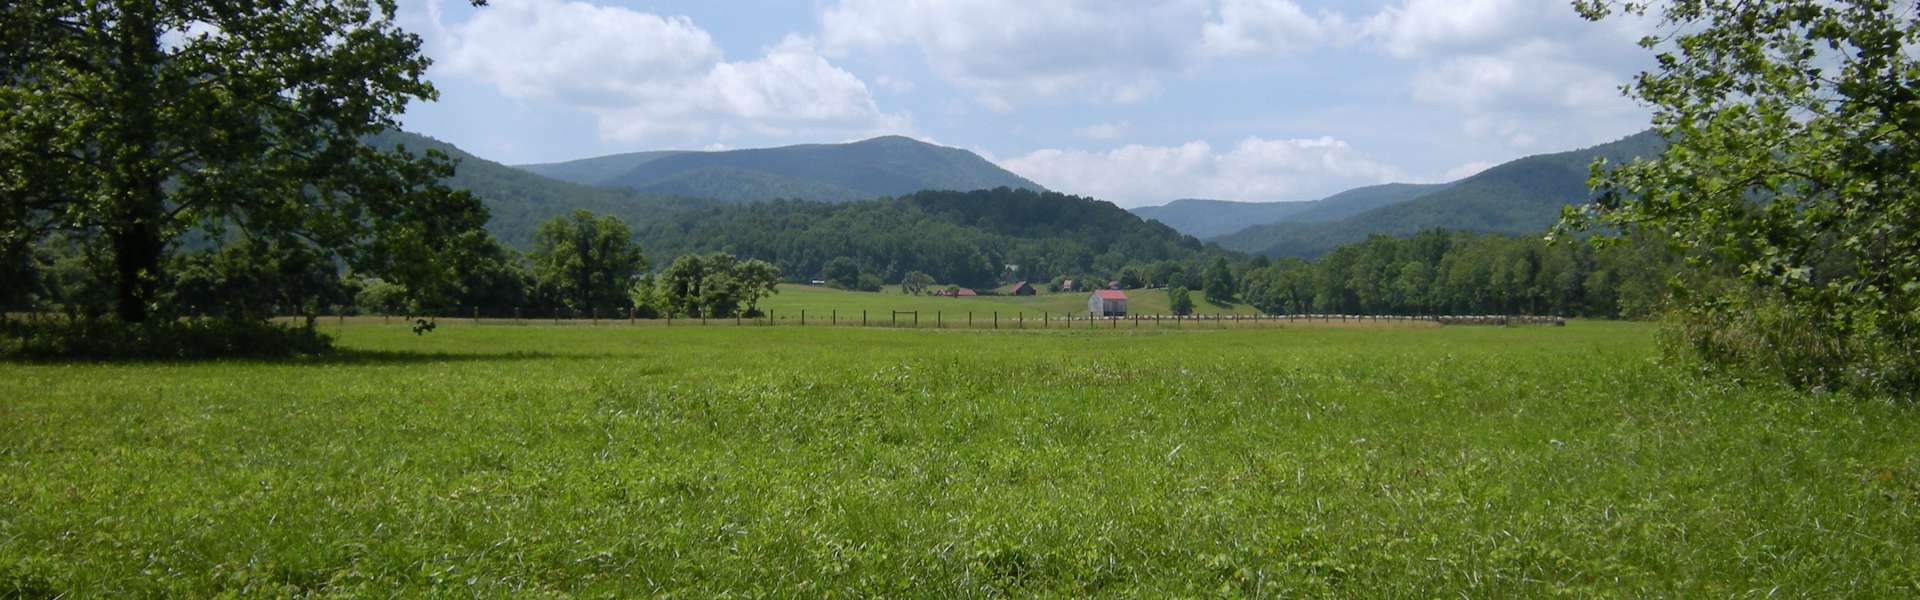 Blue Ridge Mountain View